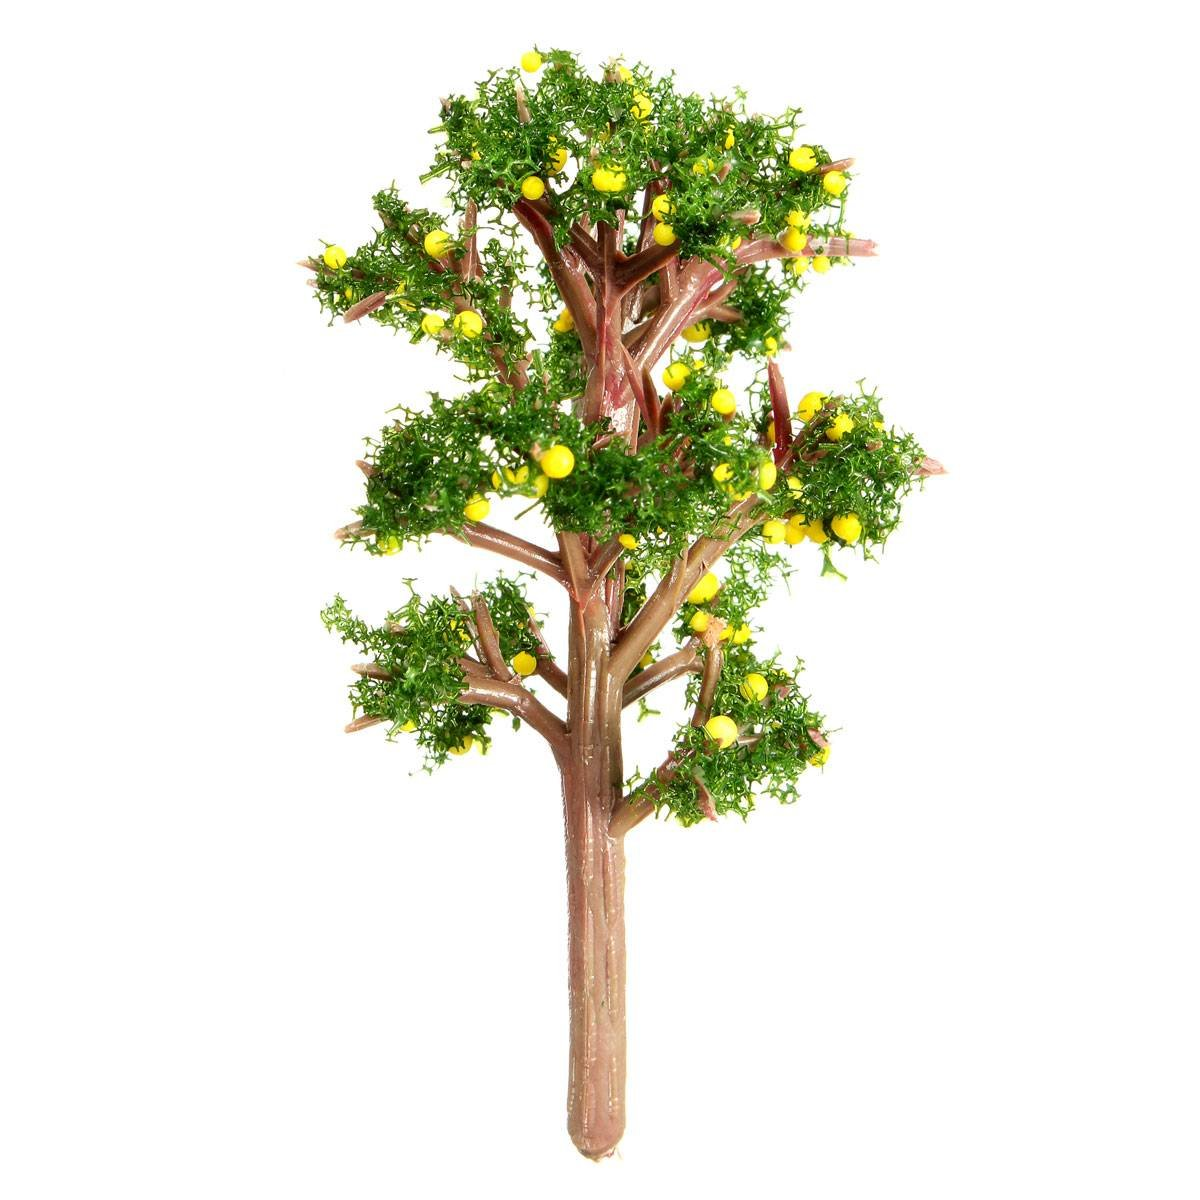 GSFY Wholesale Miniature Emulation Orange Tree Moss Bonsai Micro Landscape DIY Craft Garden Ornament